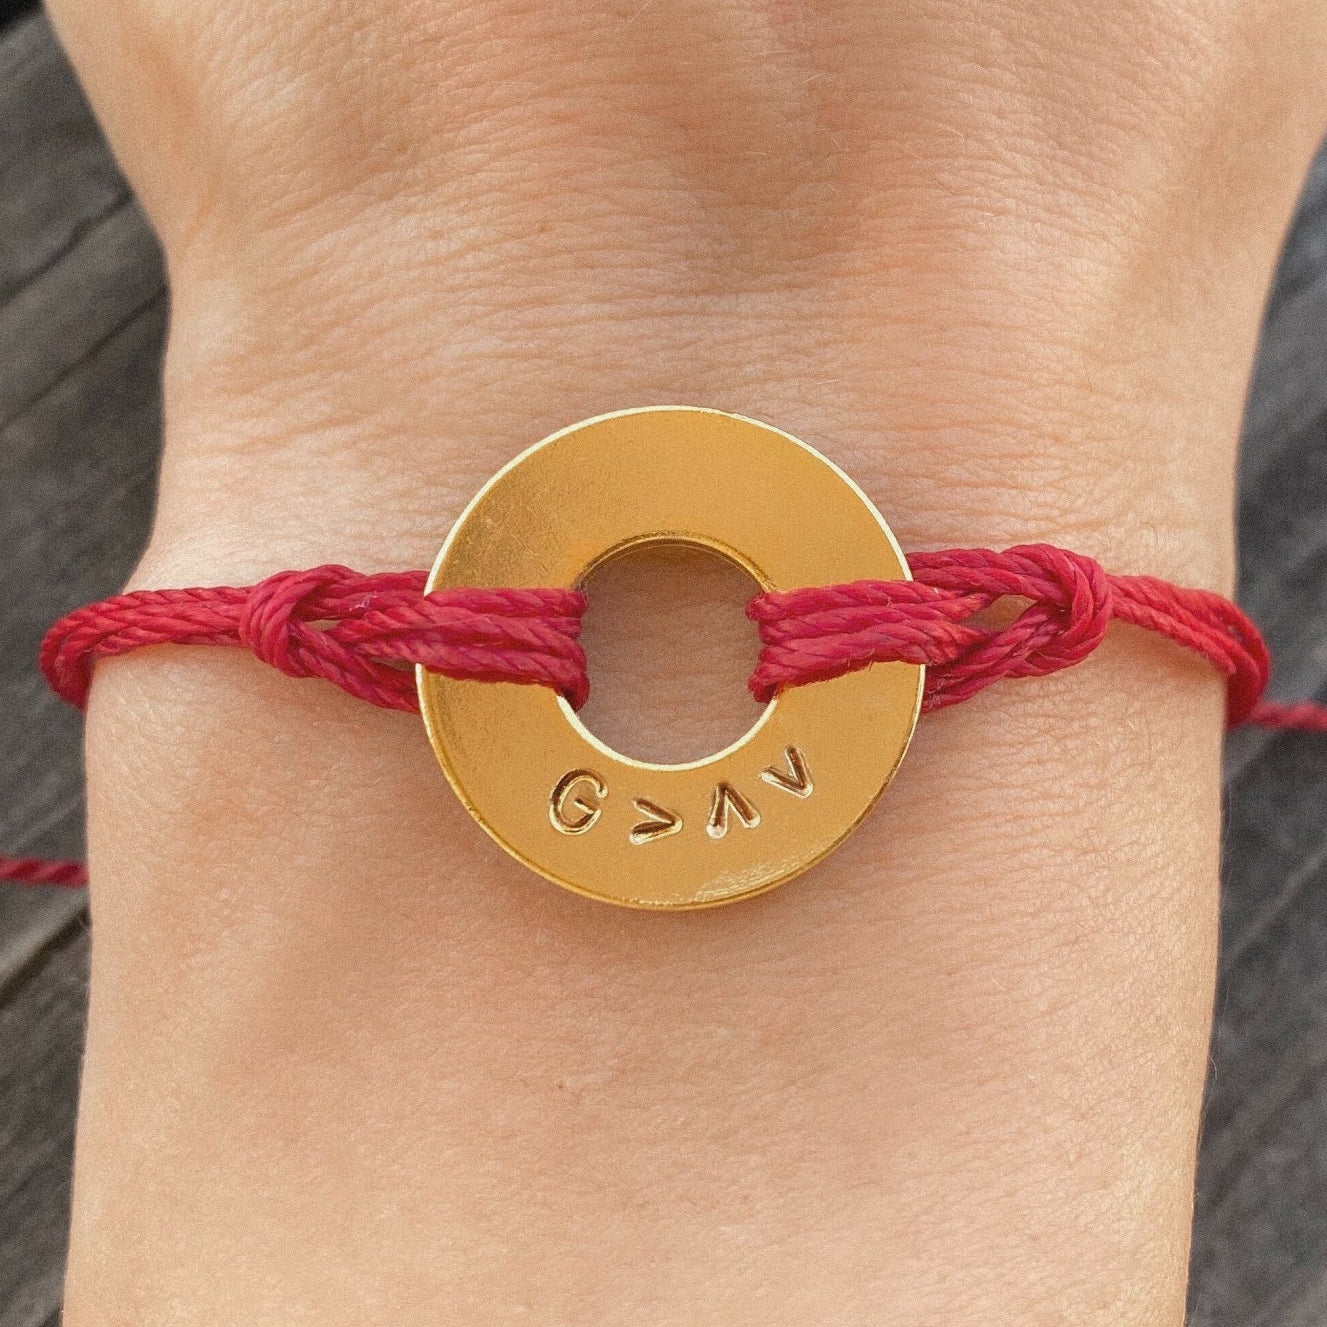 A person sharing why they chose their custom message, G>^v, on their MyIntent Custom Twist Red Bracelet with Gold Token